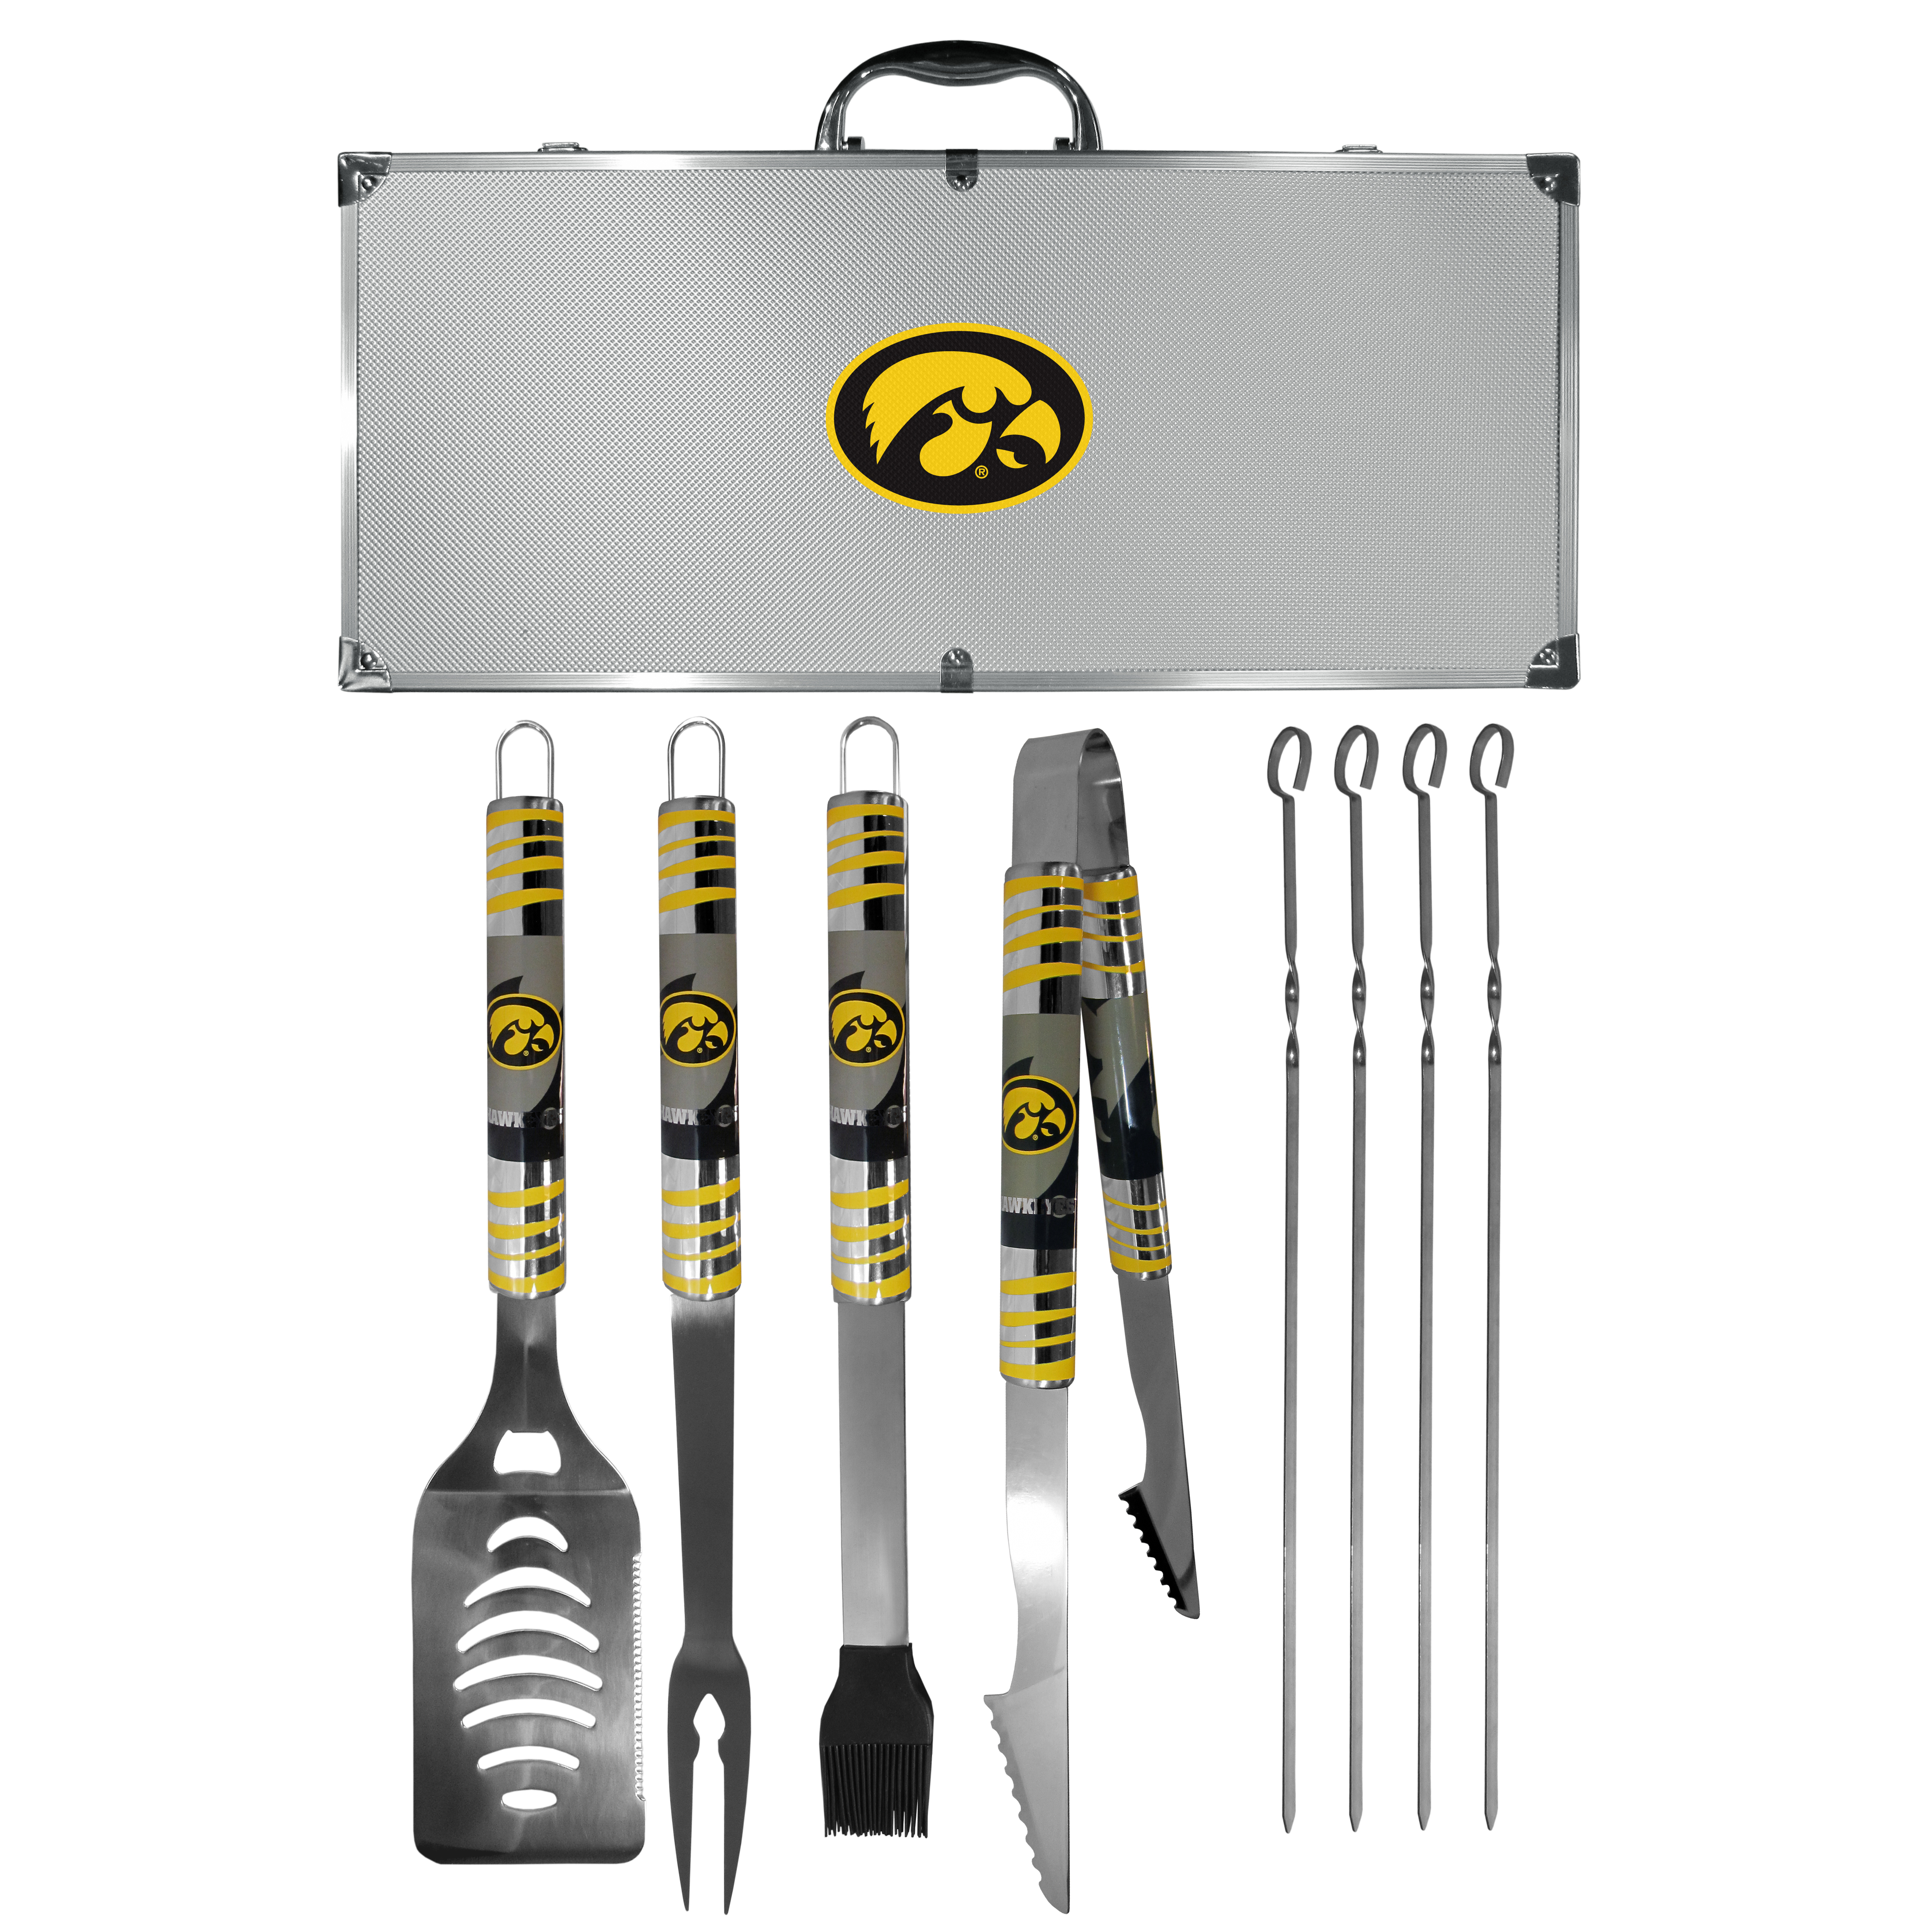 Iowa Hawkeyes 8 pc Tailgater BBQ Set - This is the ultimate Iowa Hawkeyes tailgate accessory! The high quality, 420 grade stainless steel tools are durable and well-made enough to make even the pickiest grill master smile. This complete grill accessory kit includes; 4 skewers, spatula with bottle opener and serrated knife edge, basting brush, tongs and a fork. The 18 inch metal carrying case is perfect for great outdoor use making grilling an ease while camping, tailgating or while having a game day party on your patio. The tools are 17 inches long and feature vivid team graphics. The metal case features a large team emblem with exceptional detail. This high-end men's gift is sure to be a hit as a present on Father's Day or Christmas.